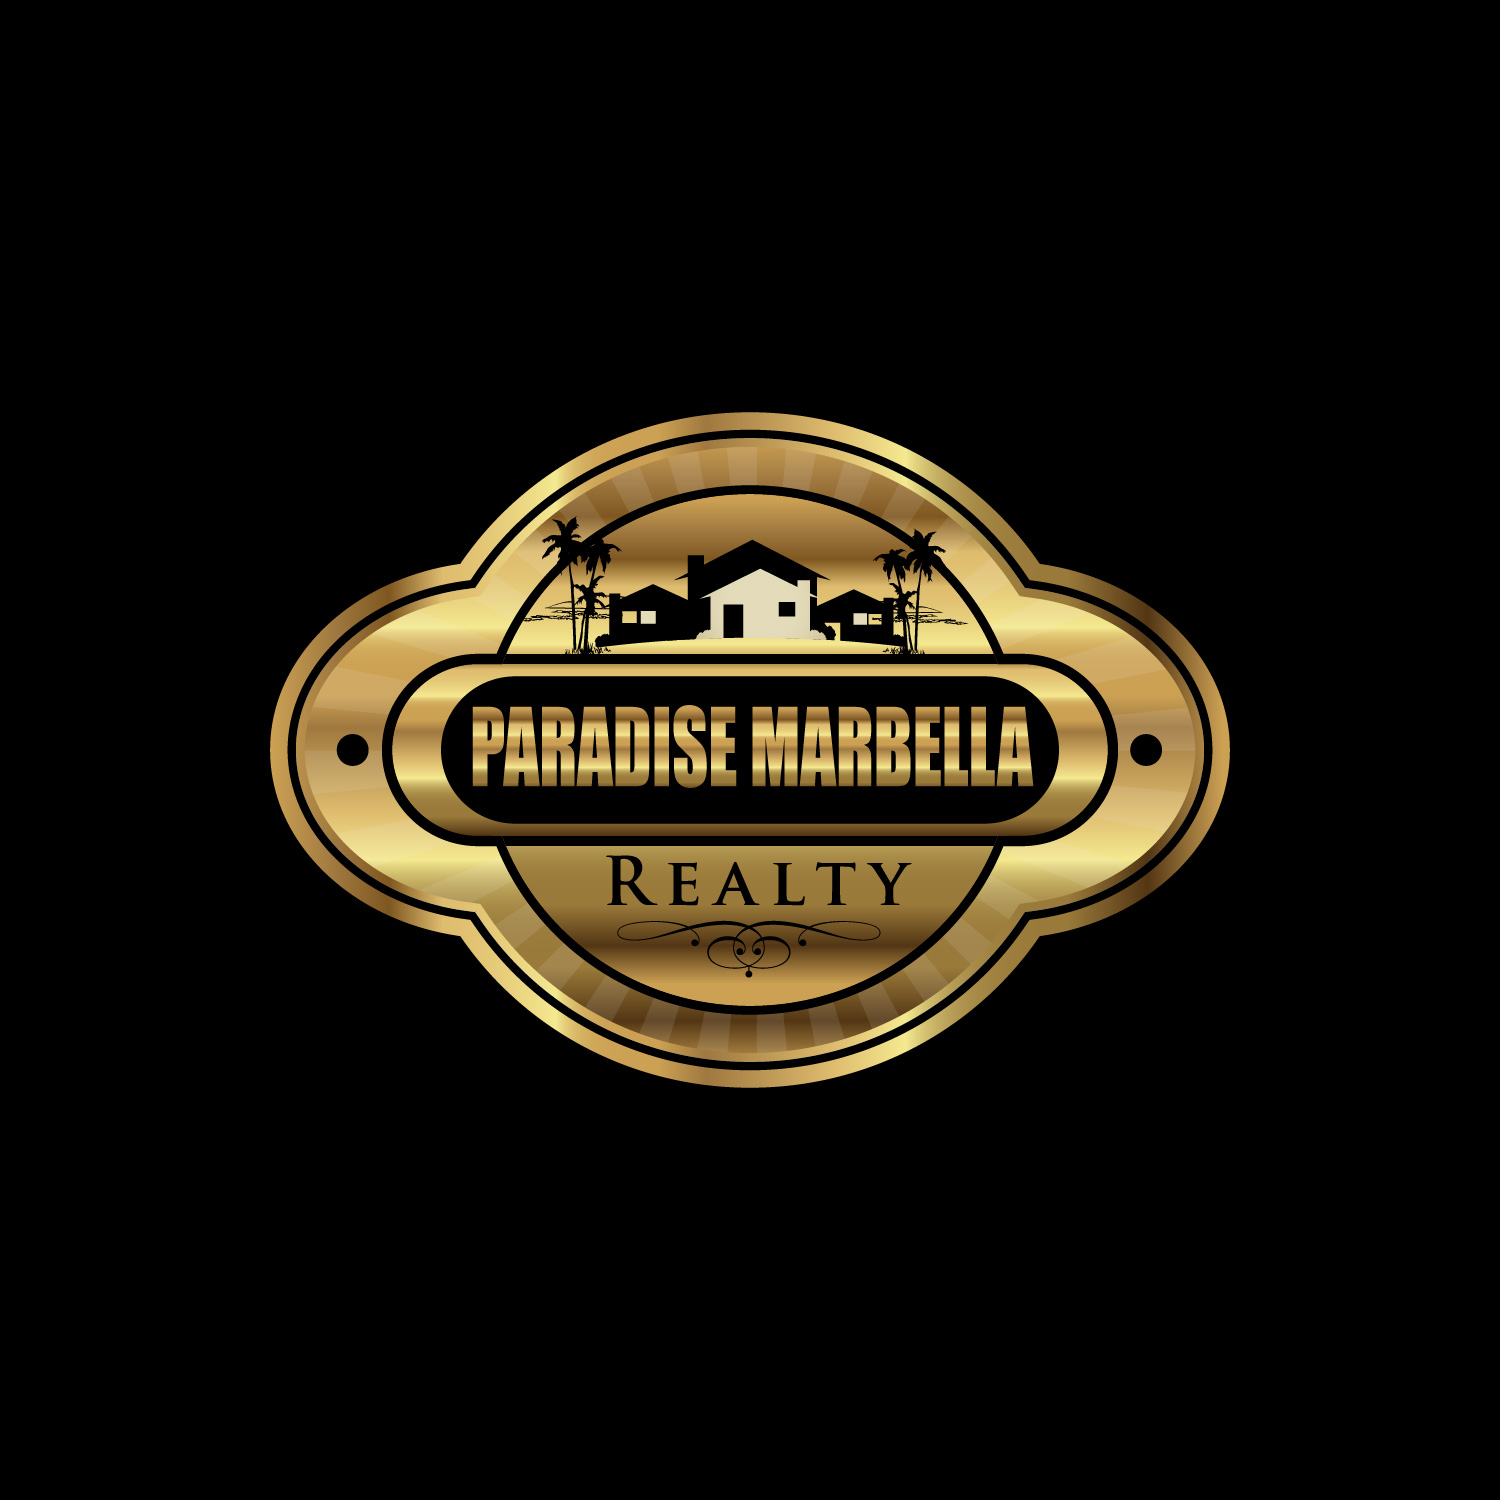 Logo Design by lagalag - Entry No. 76 in the Logo Design Contest Captivating Logo Design for Paradise Marbella Realty.